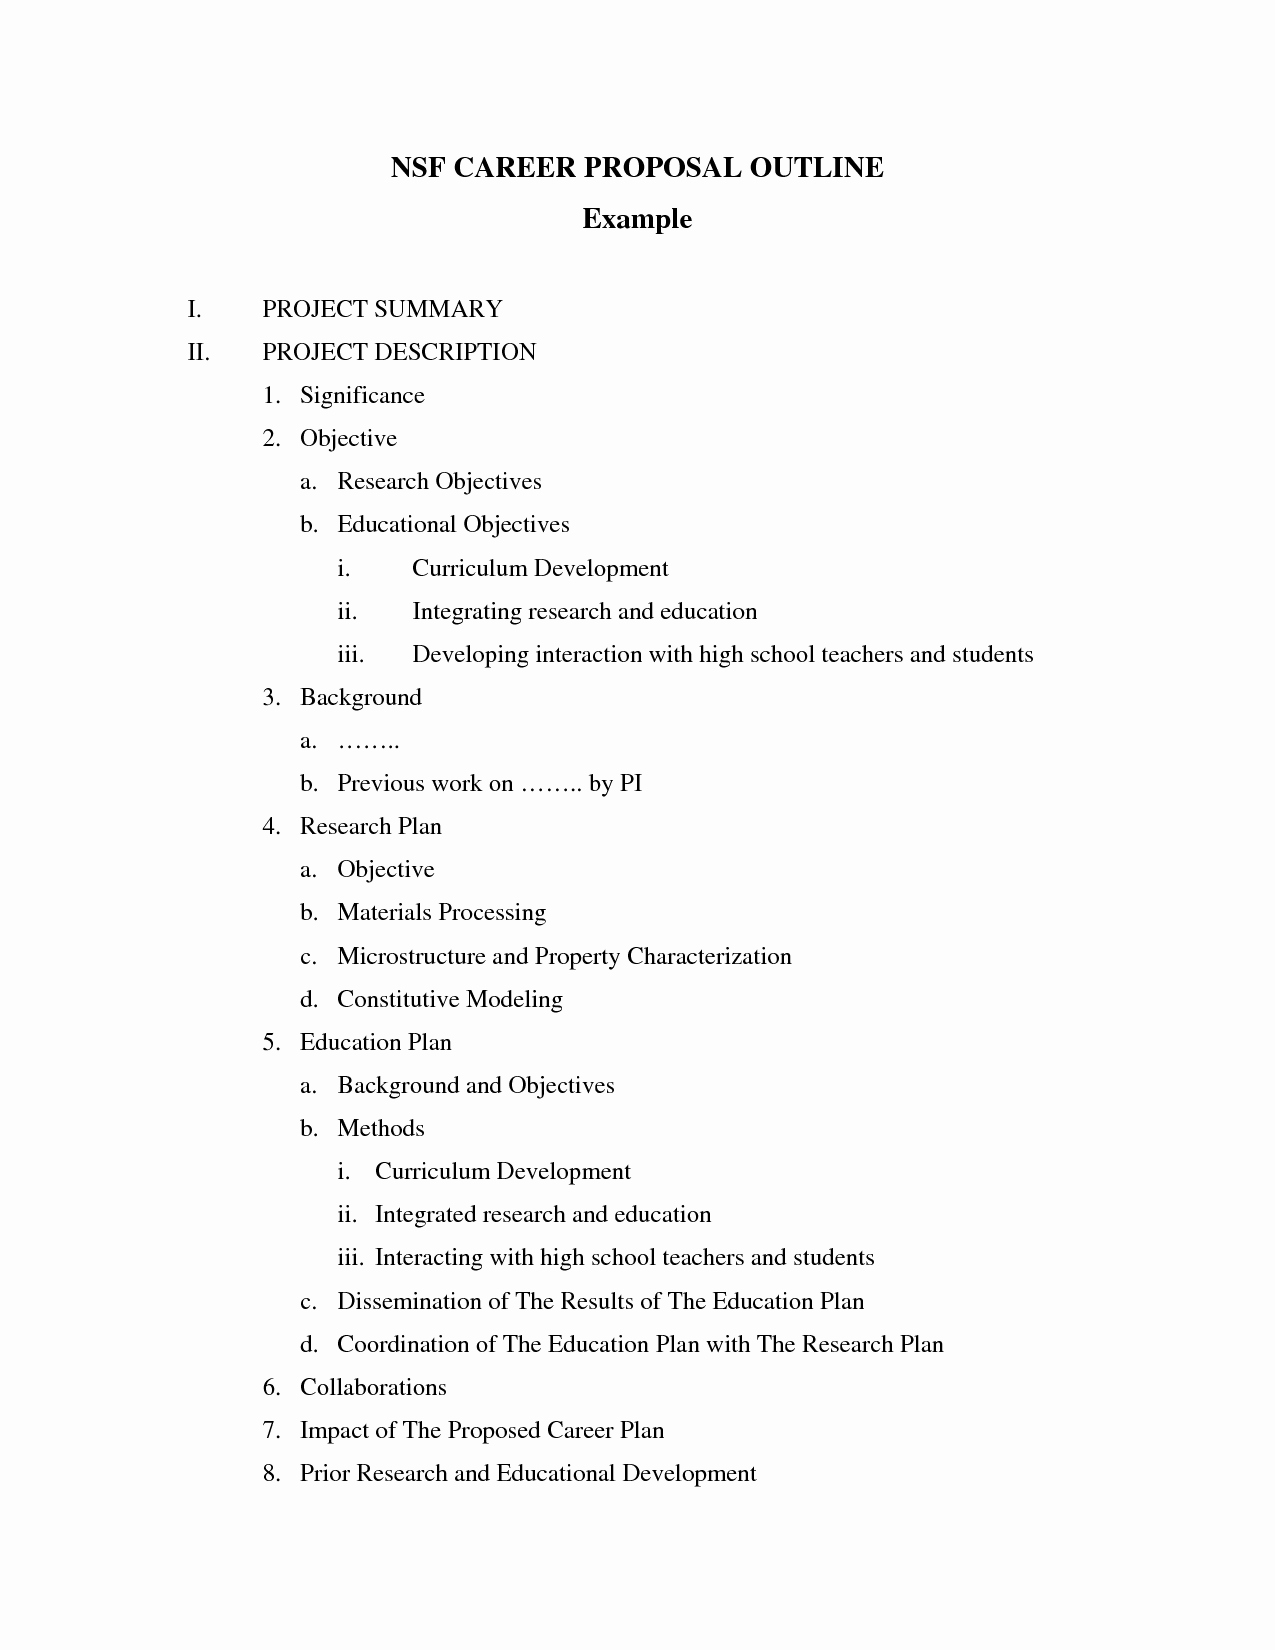 Research Proposal Outline Template Luxury Best S Of Sample Proposal Outline Proposal Outline